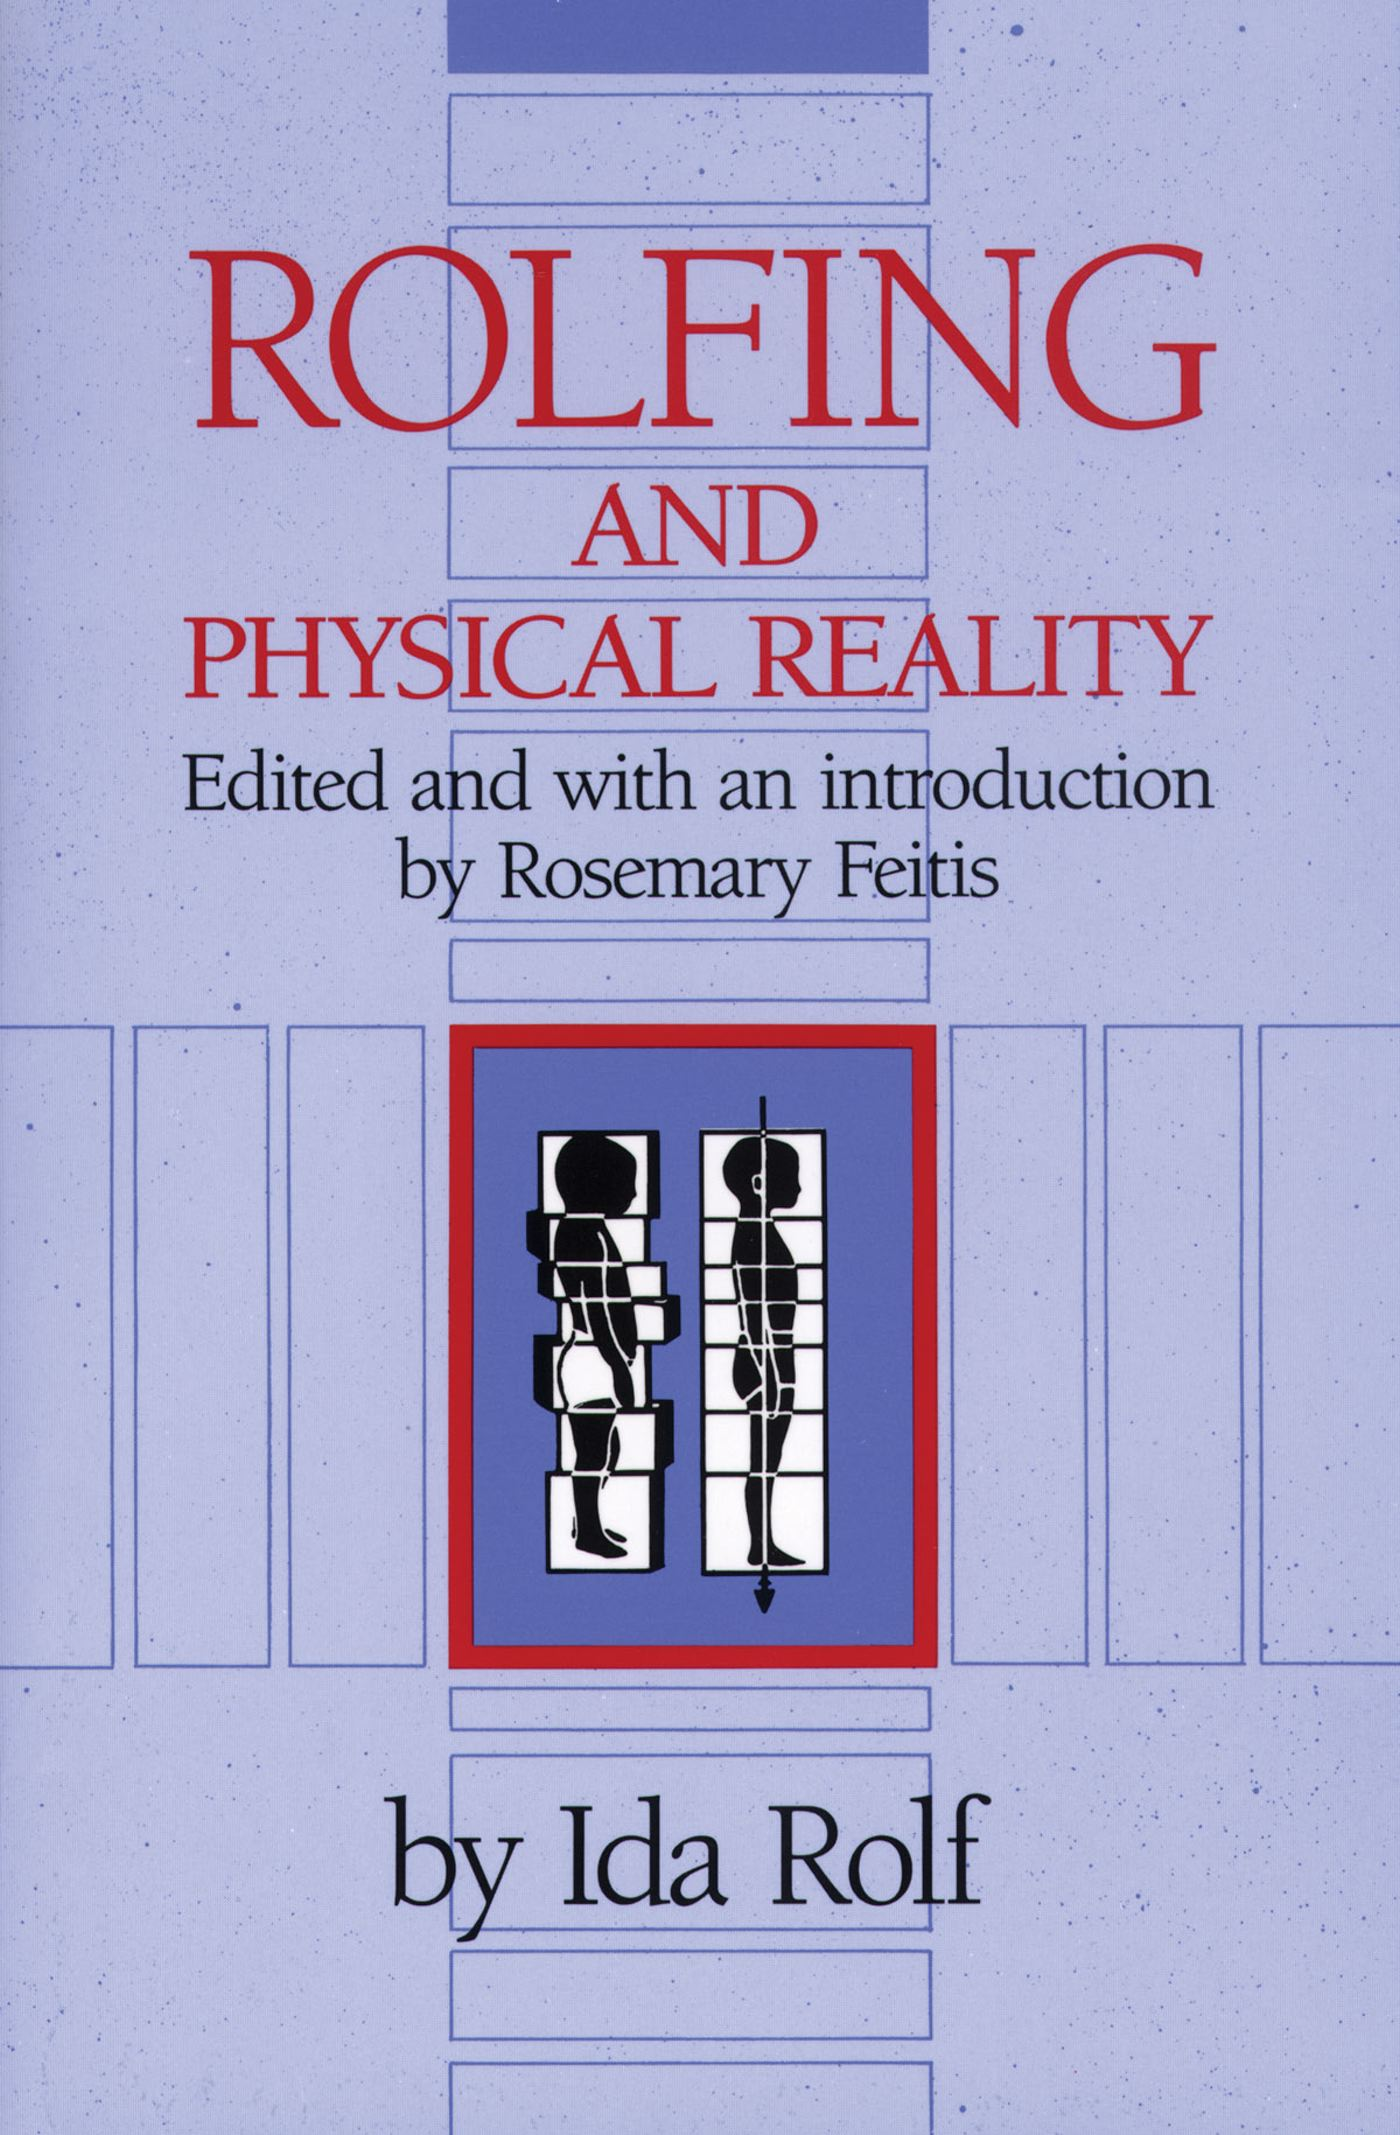 Rolfing-and-physical-reality-9780892813803_hr